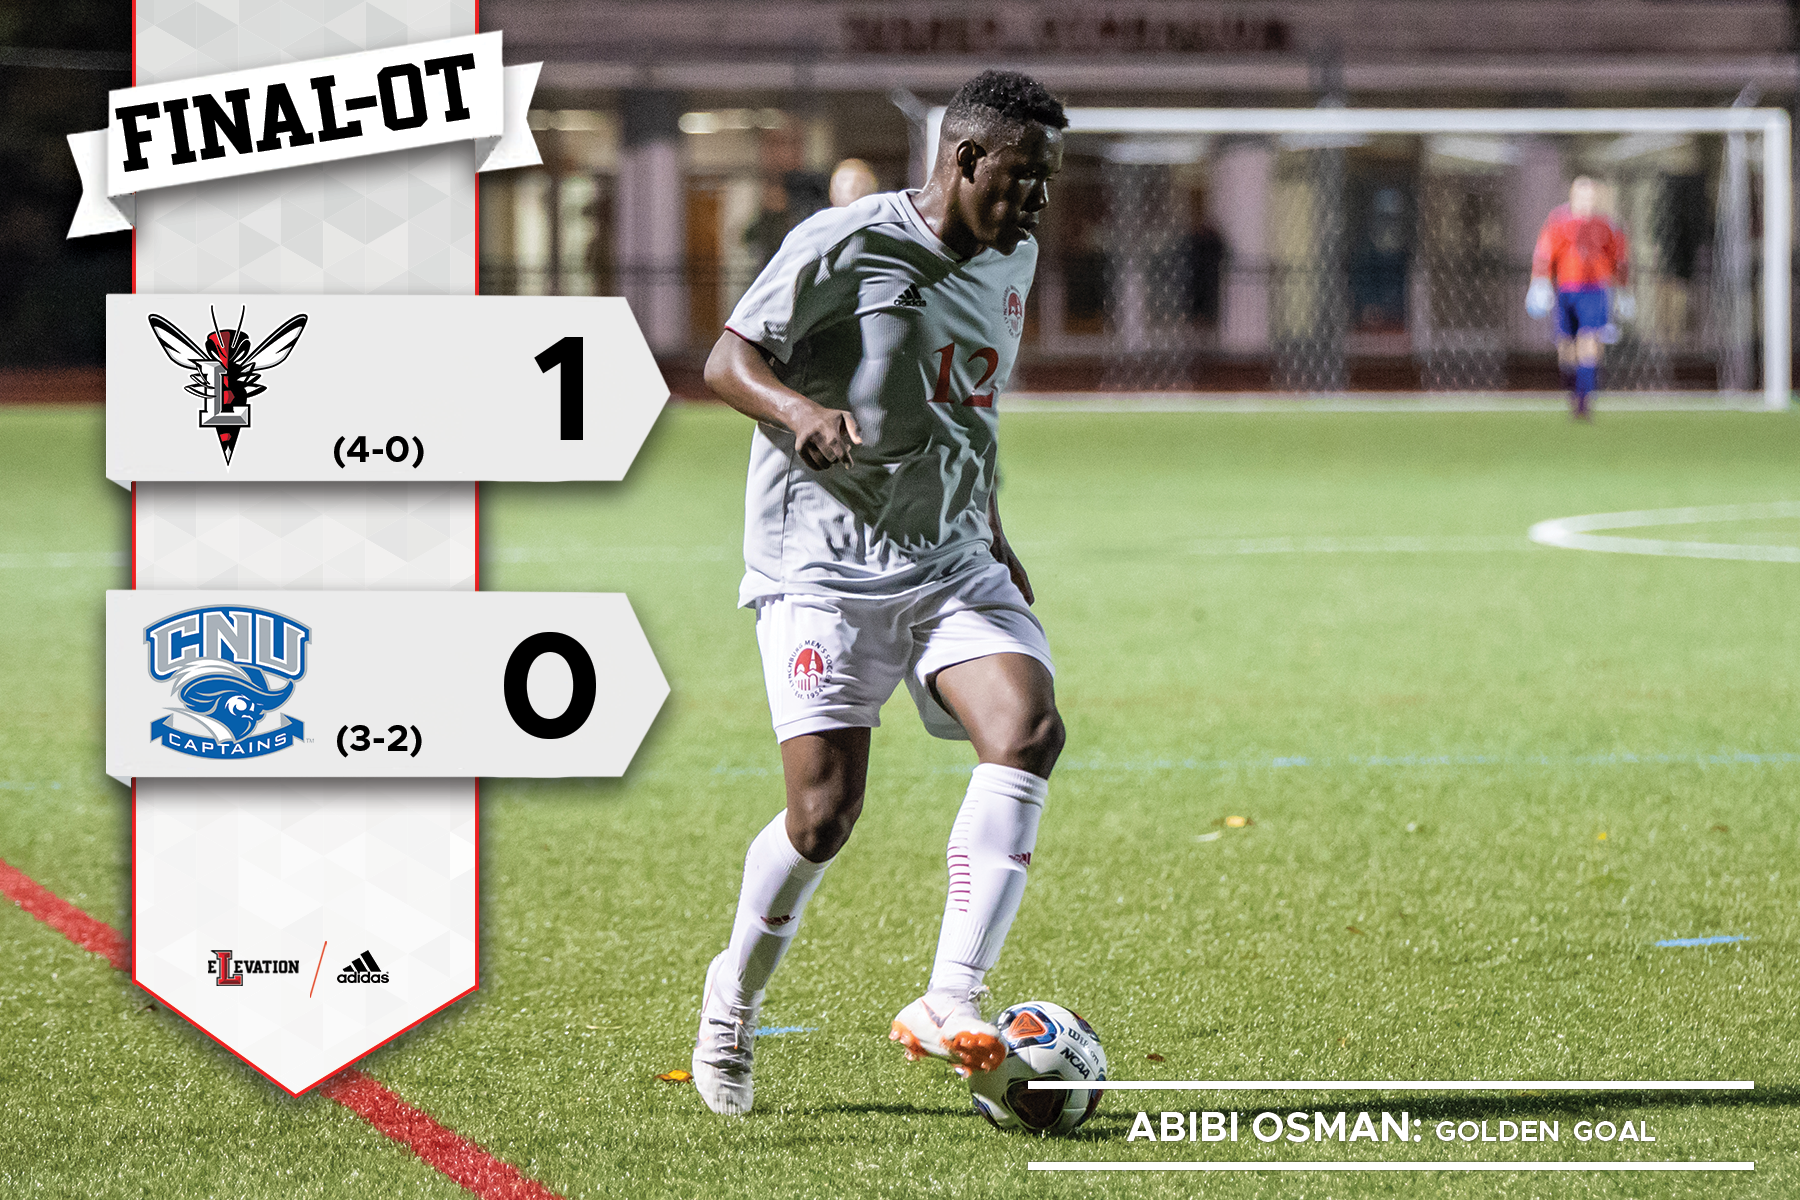 Abibi Osman dribbles the soccer ball. Graphic showing 1-0 final score in OT. School logos.